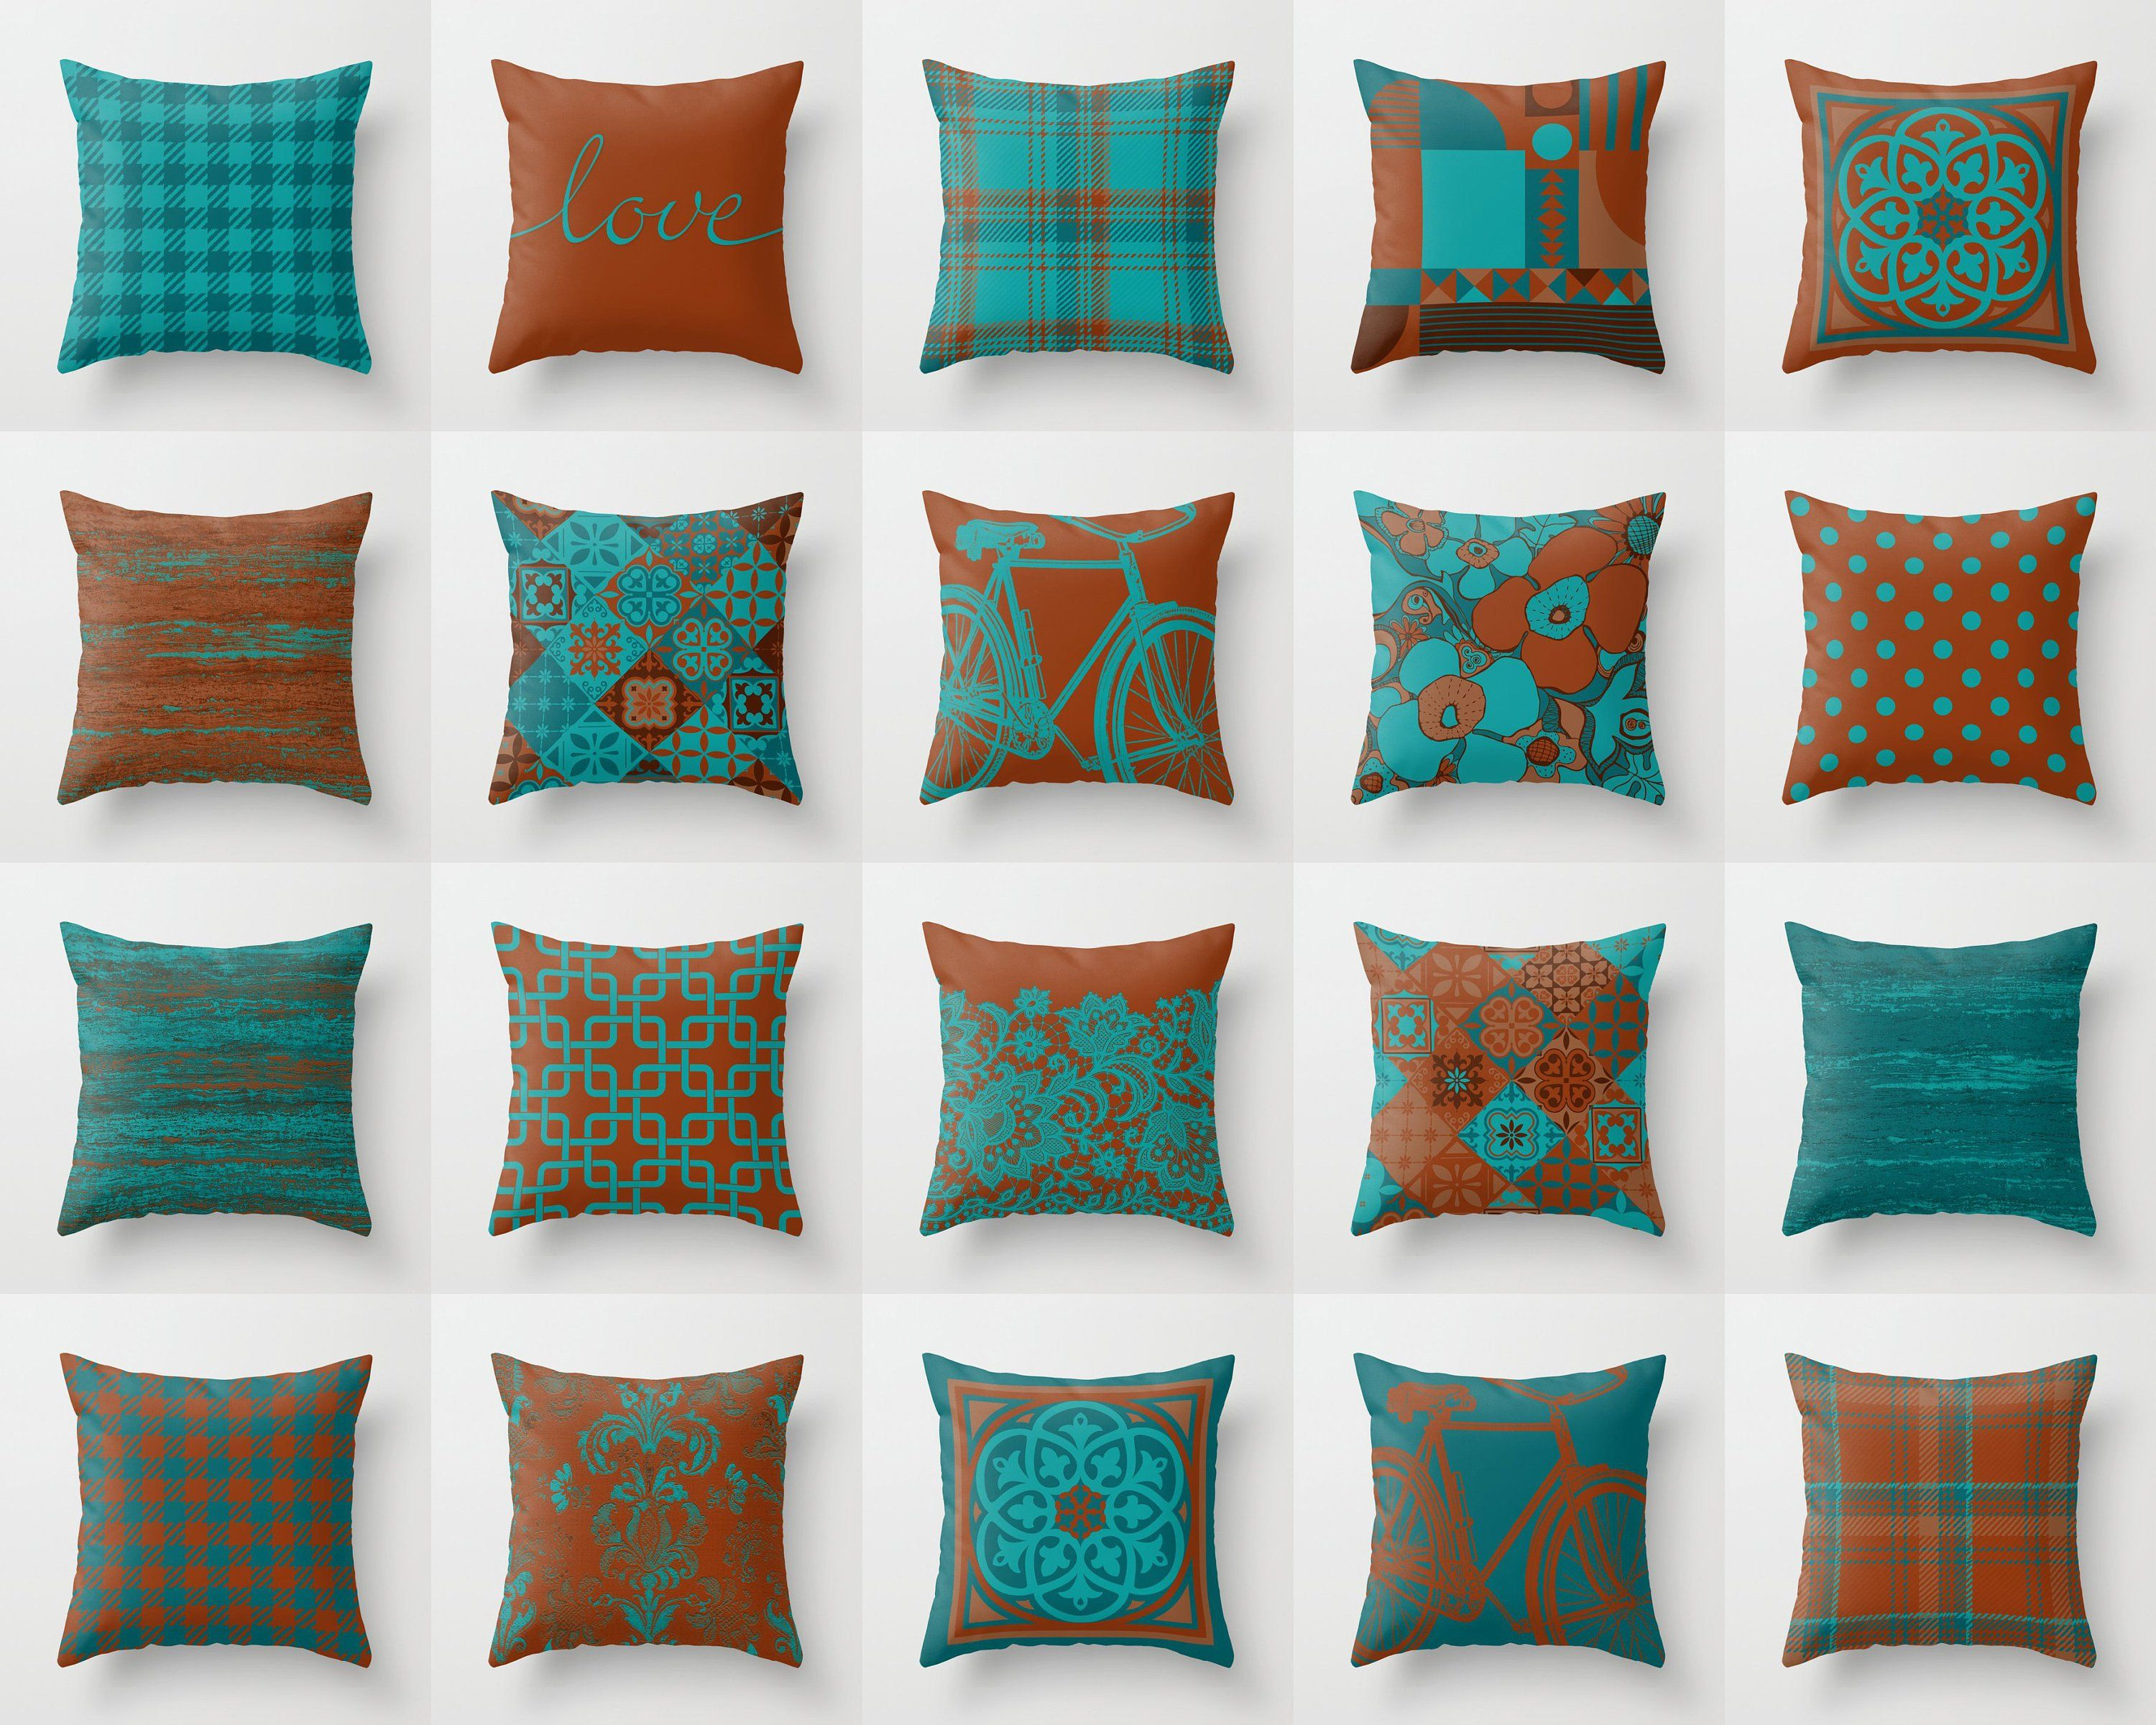 Teal Turquoise Blue Rust Brown Throw Pillow Mix And Match Indoor